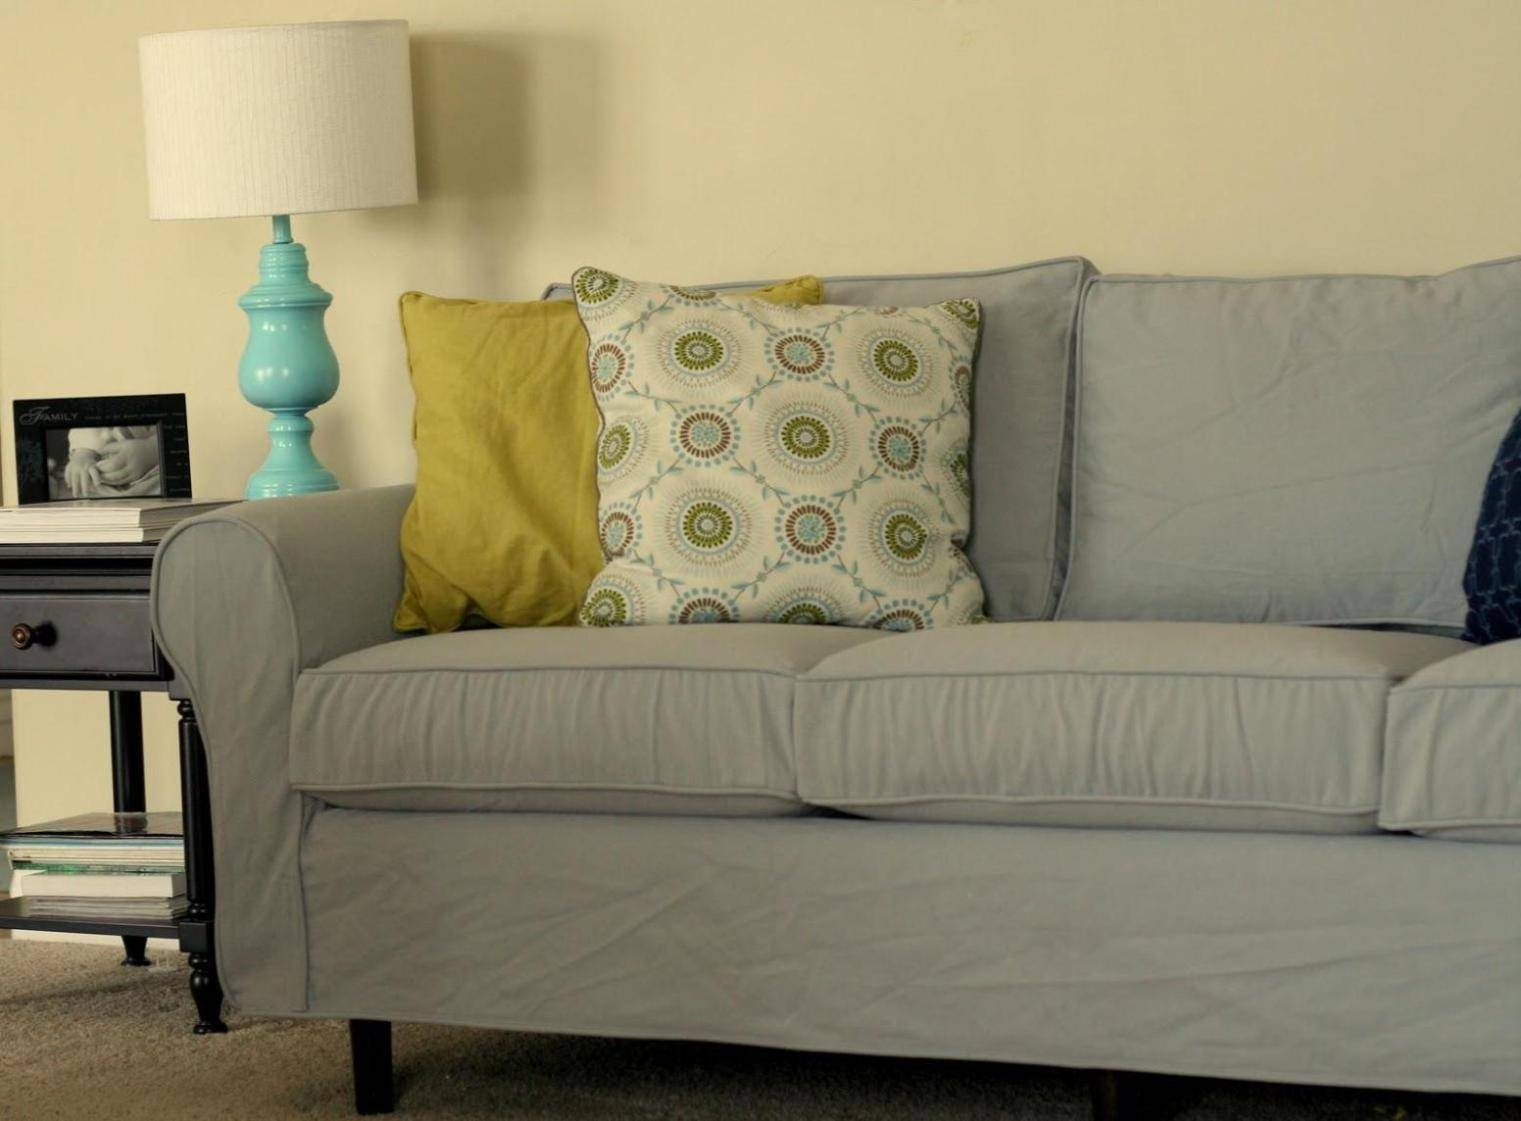 20 Inspirations 3 Piece Slipcover Sets | Sofa Ideas pertaining to 3 Piece Slipcover Sets (Image 3 of 15)